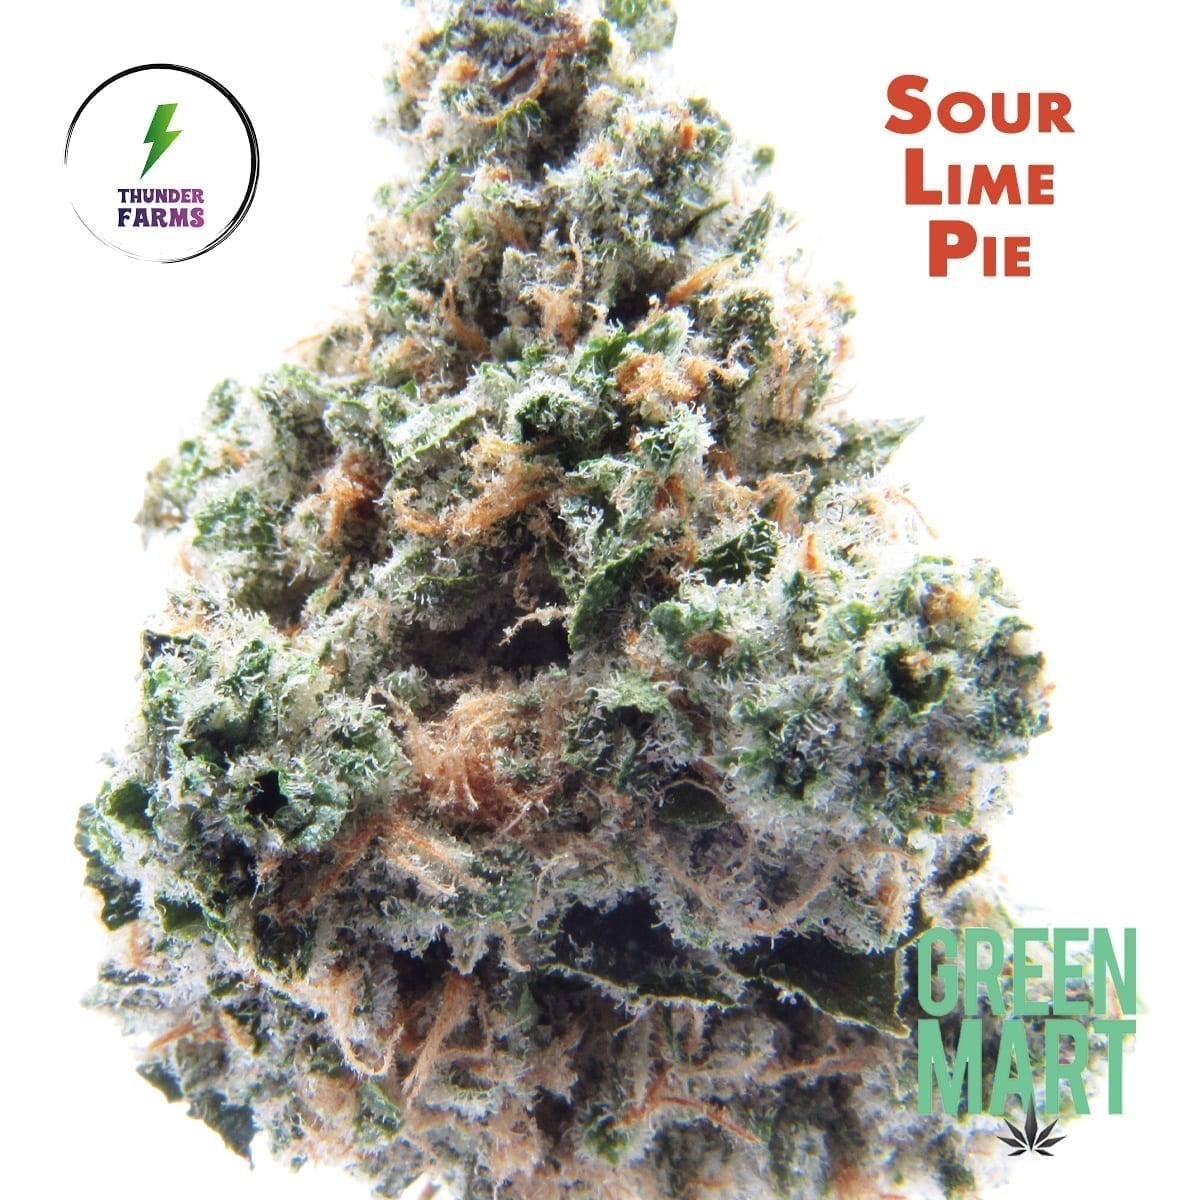 Sour Lime Pie by Thunder Farms December